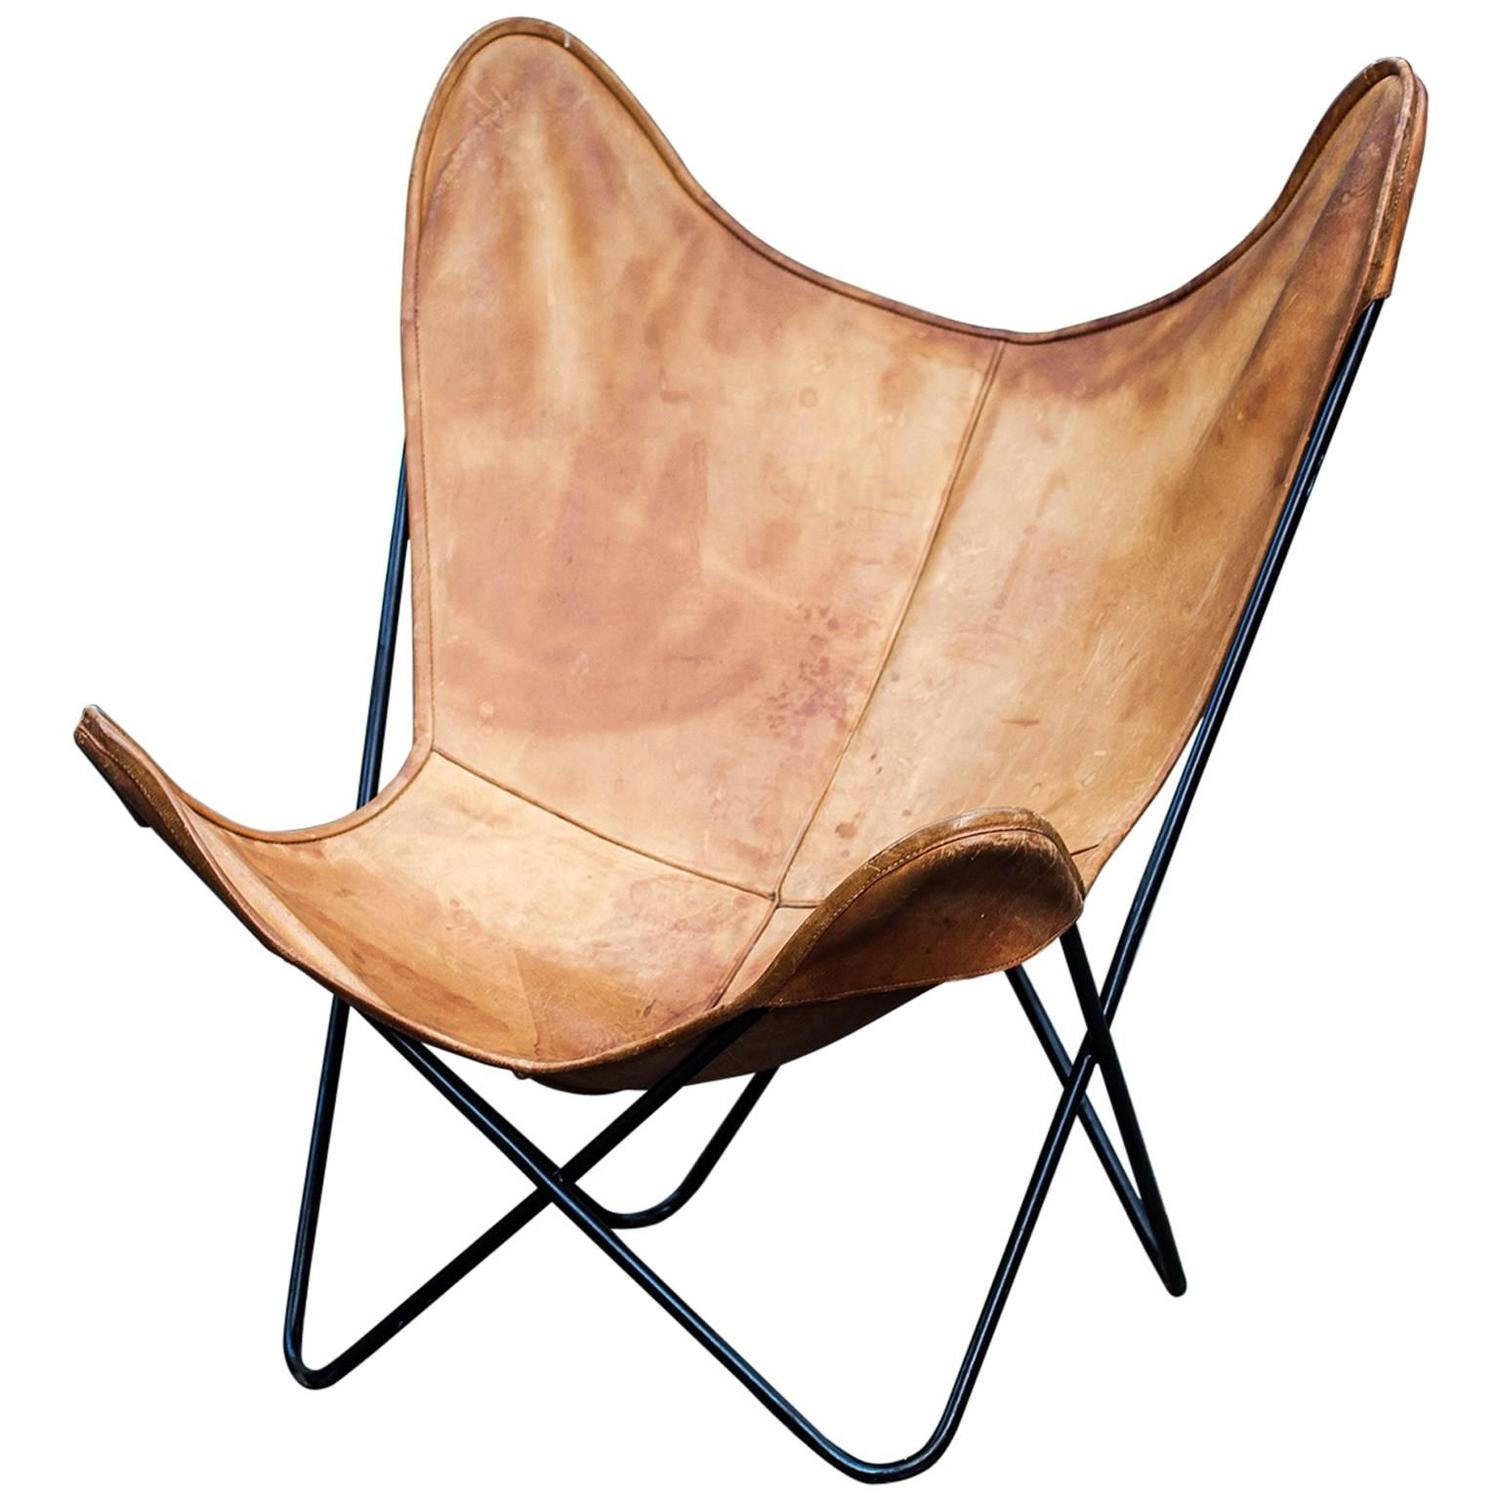 butterfly lounge chair inflatable canada by knoll international for sale at 1stdibs